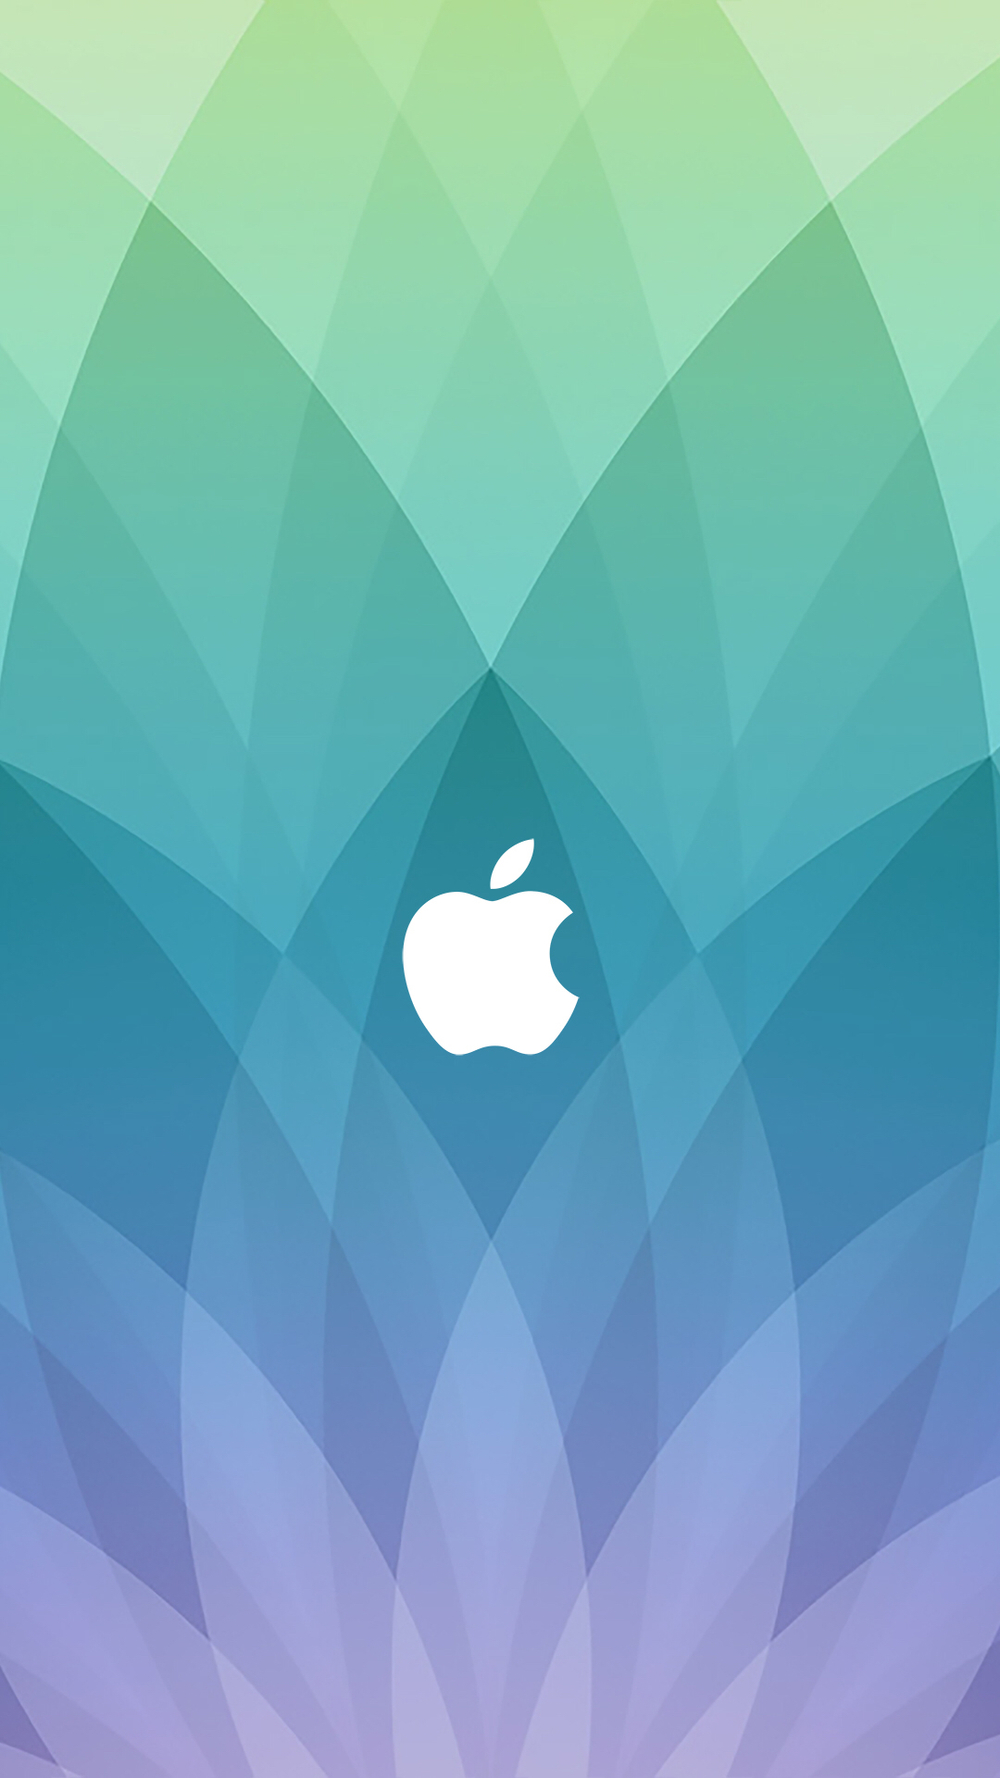 AR7-March-9-Event-Wallpaper-iPhone-Apple-Logo.jpeg